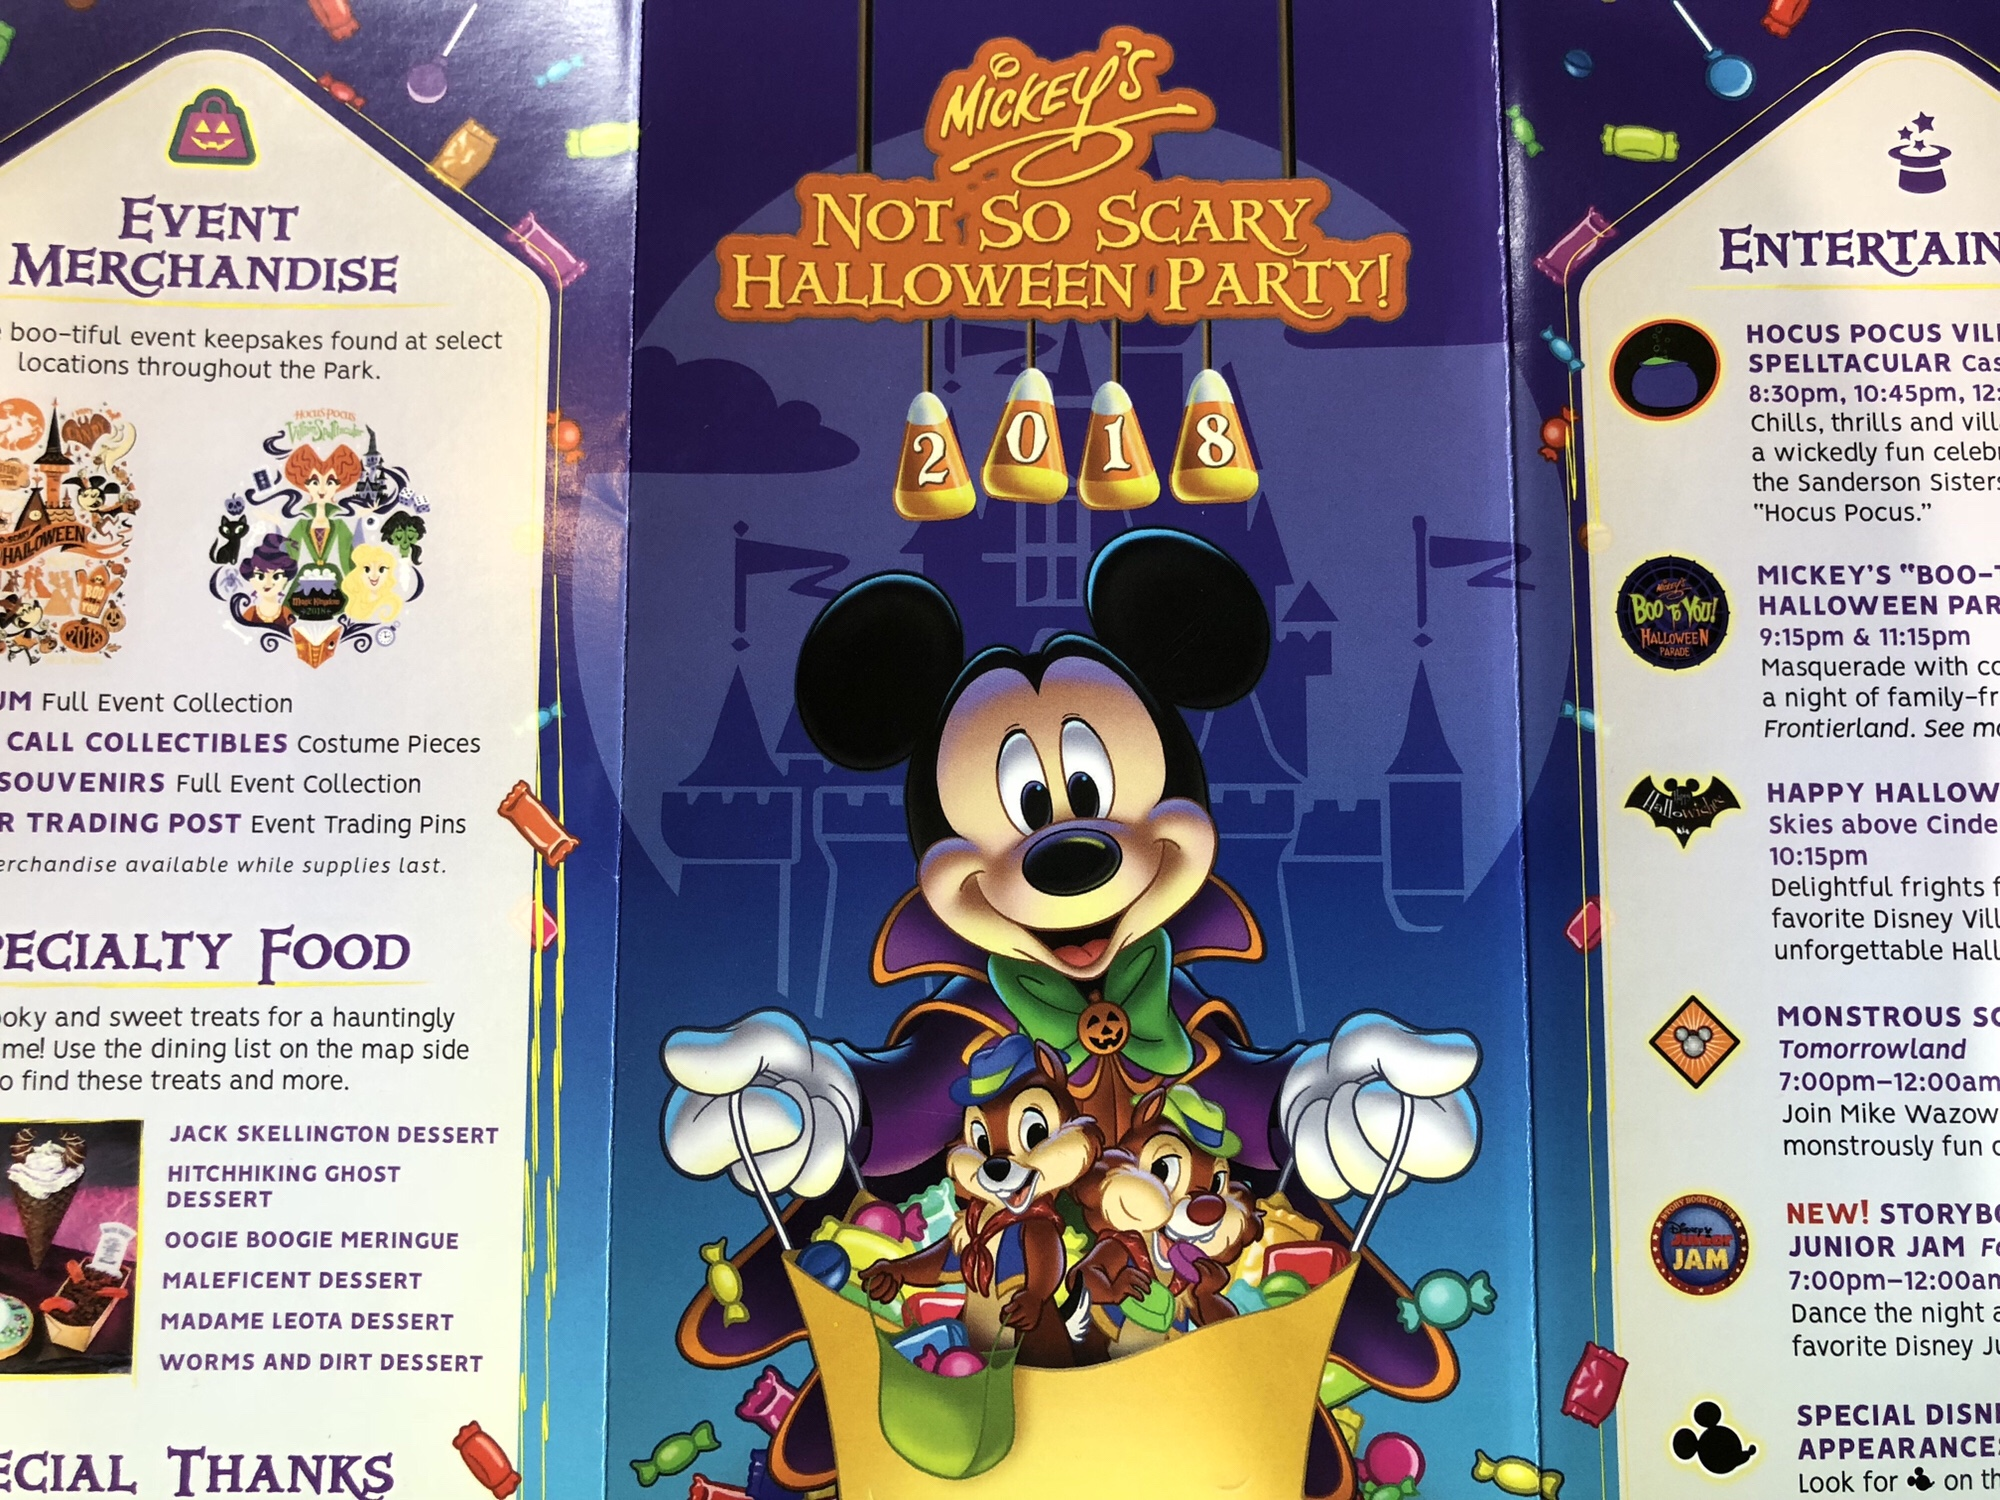 2018 mickeys not so scary halloween party guidemap